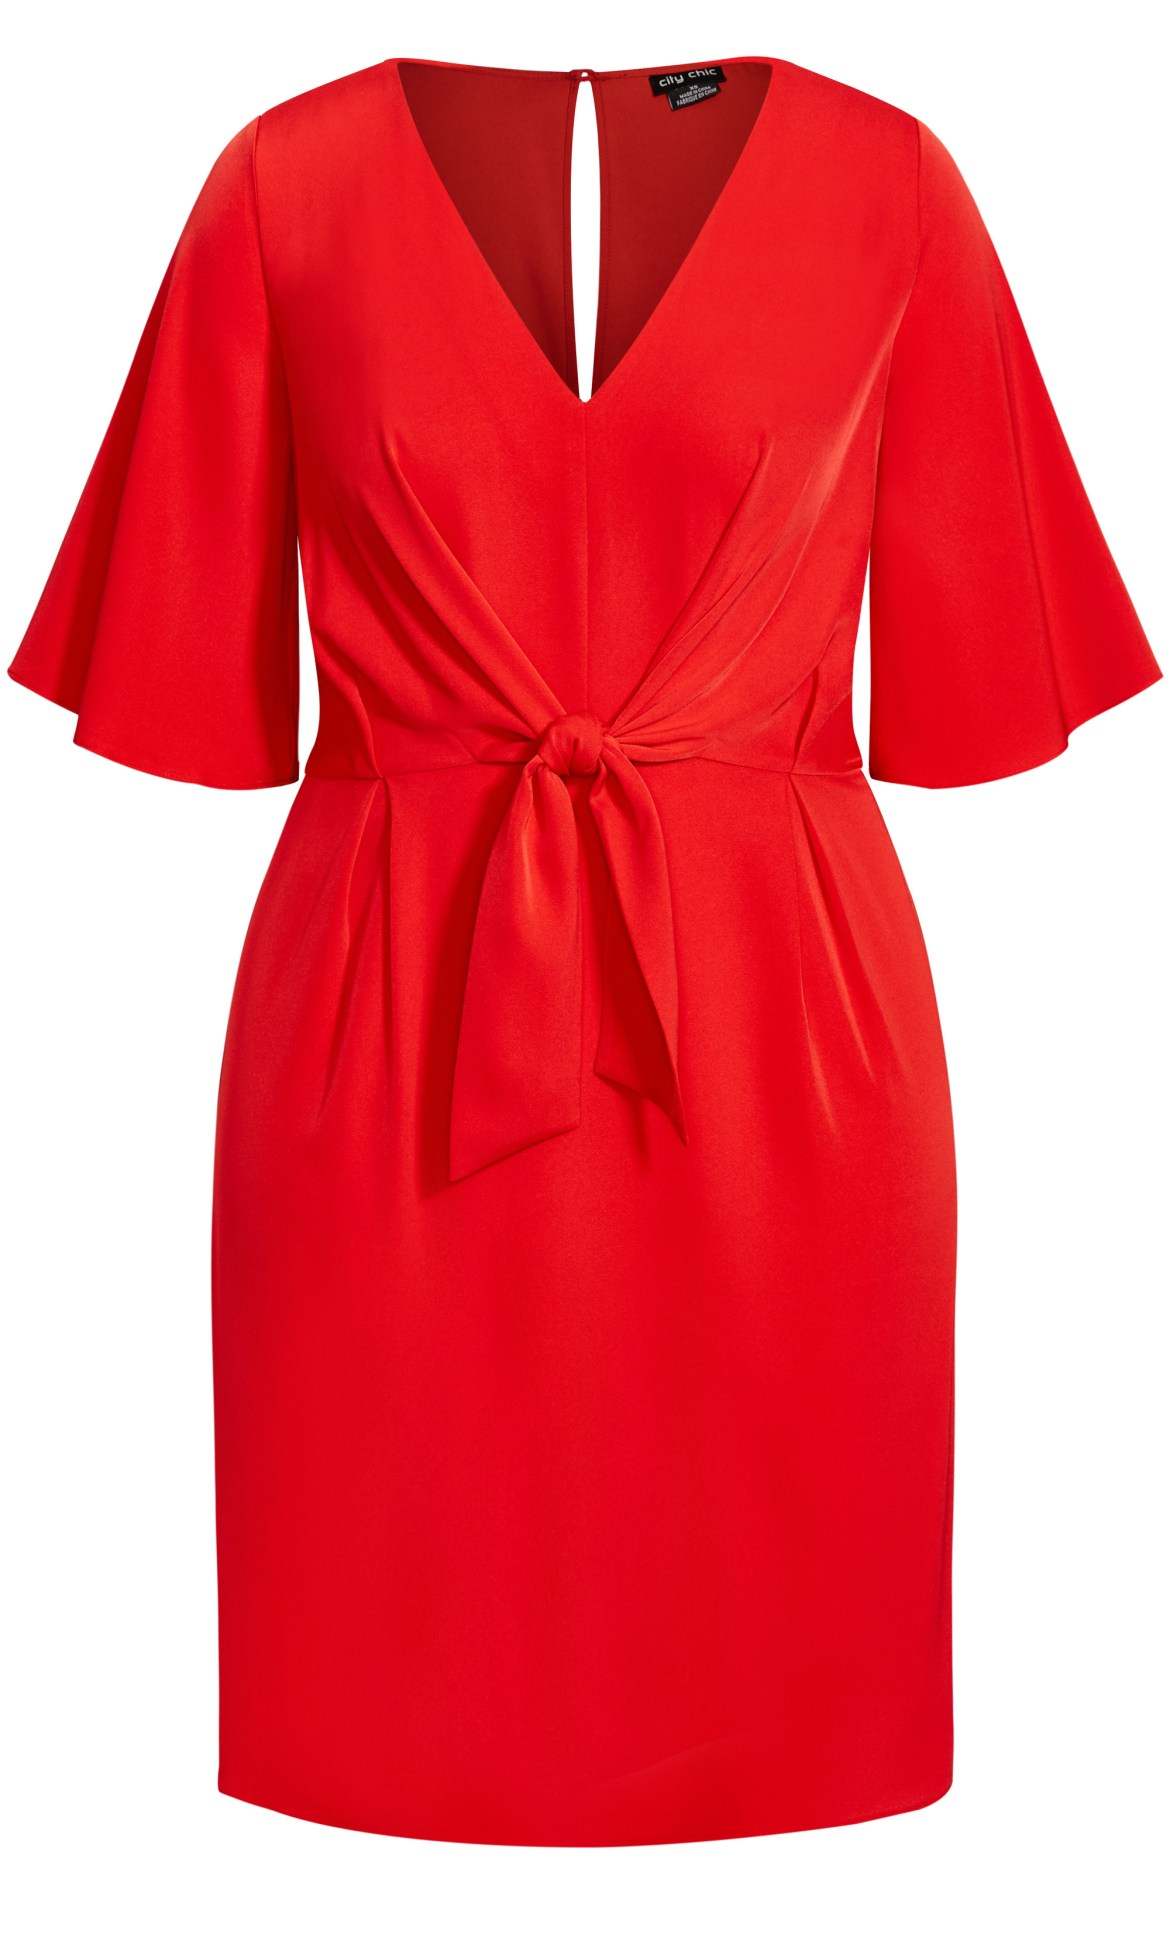 Knot Front Dress - red 5